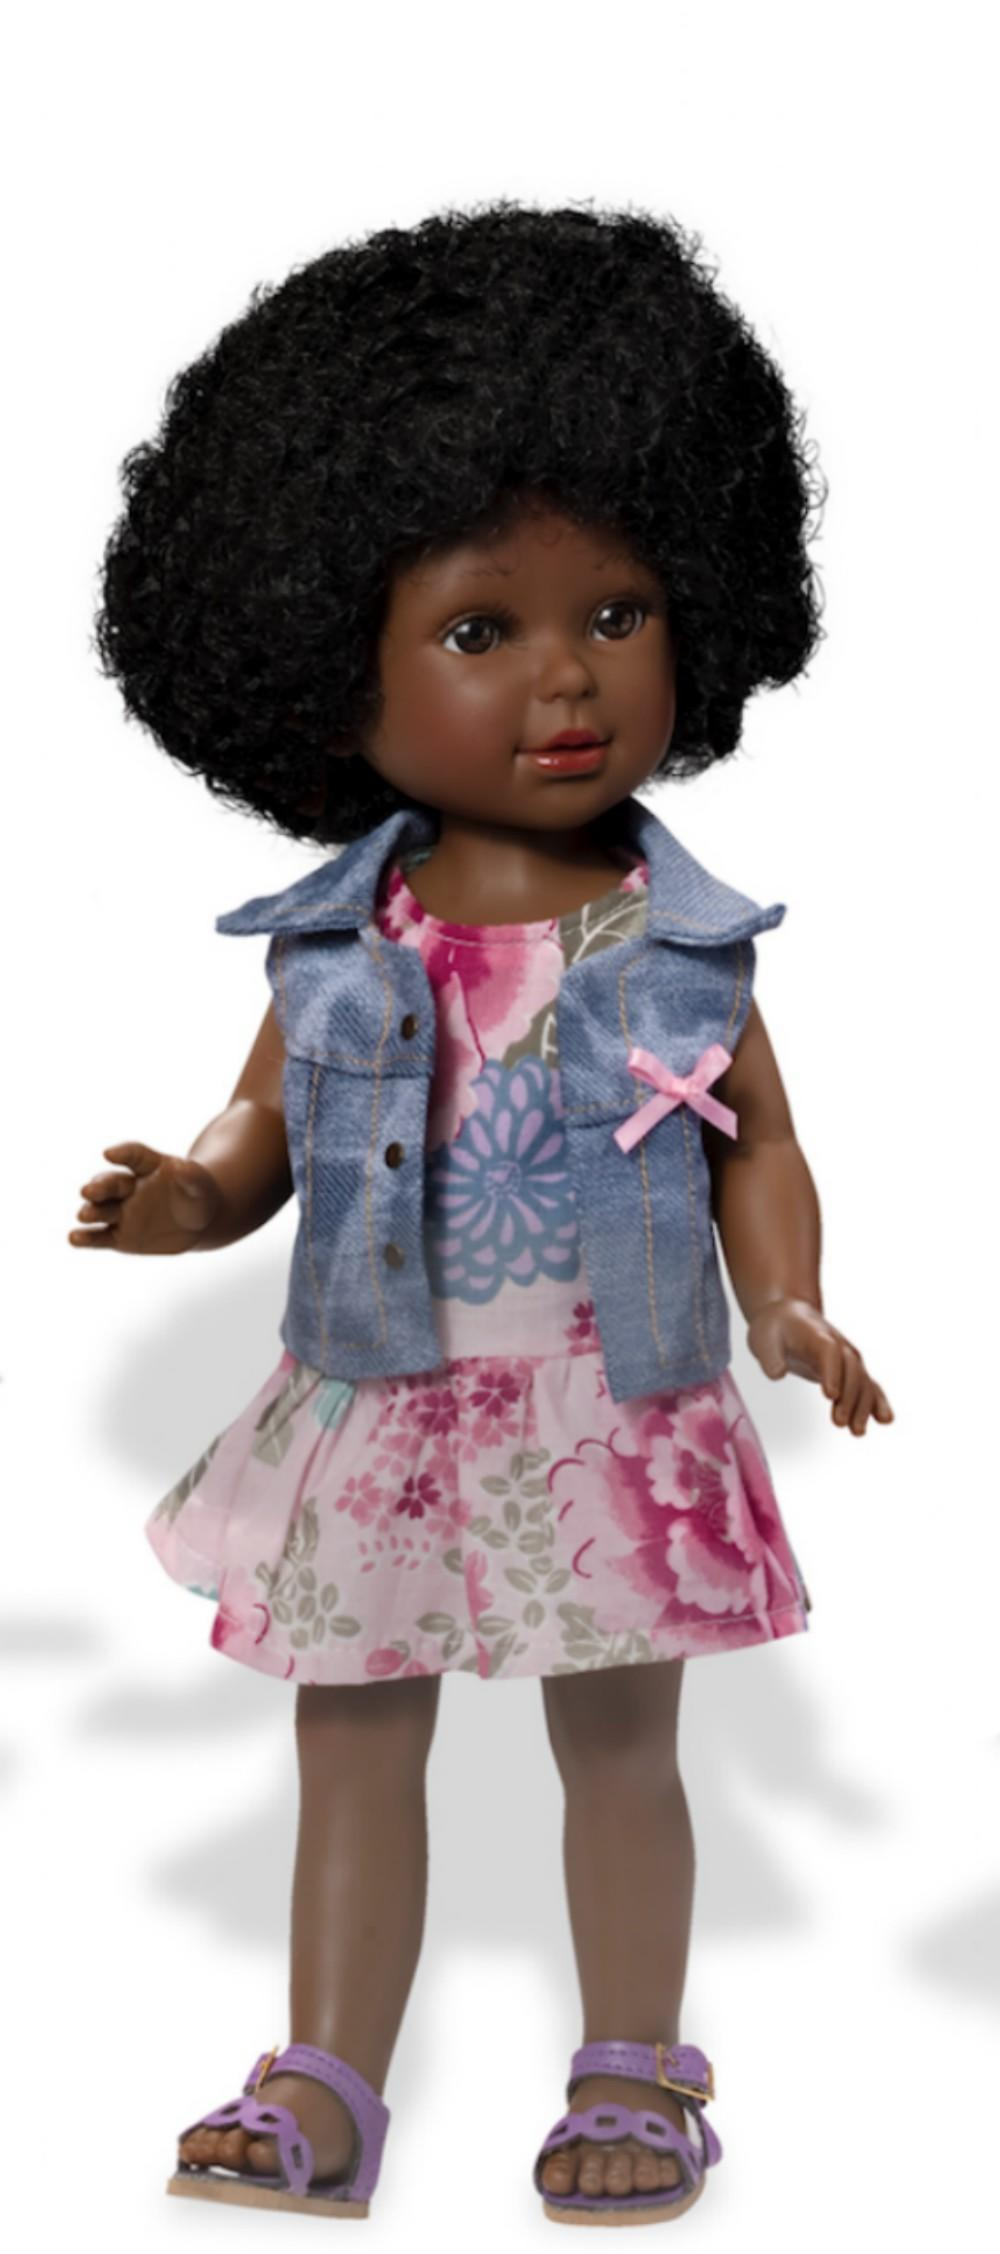 Paulina ethnic doll with Afro hair and flower dress